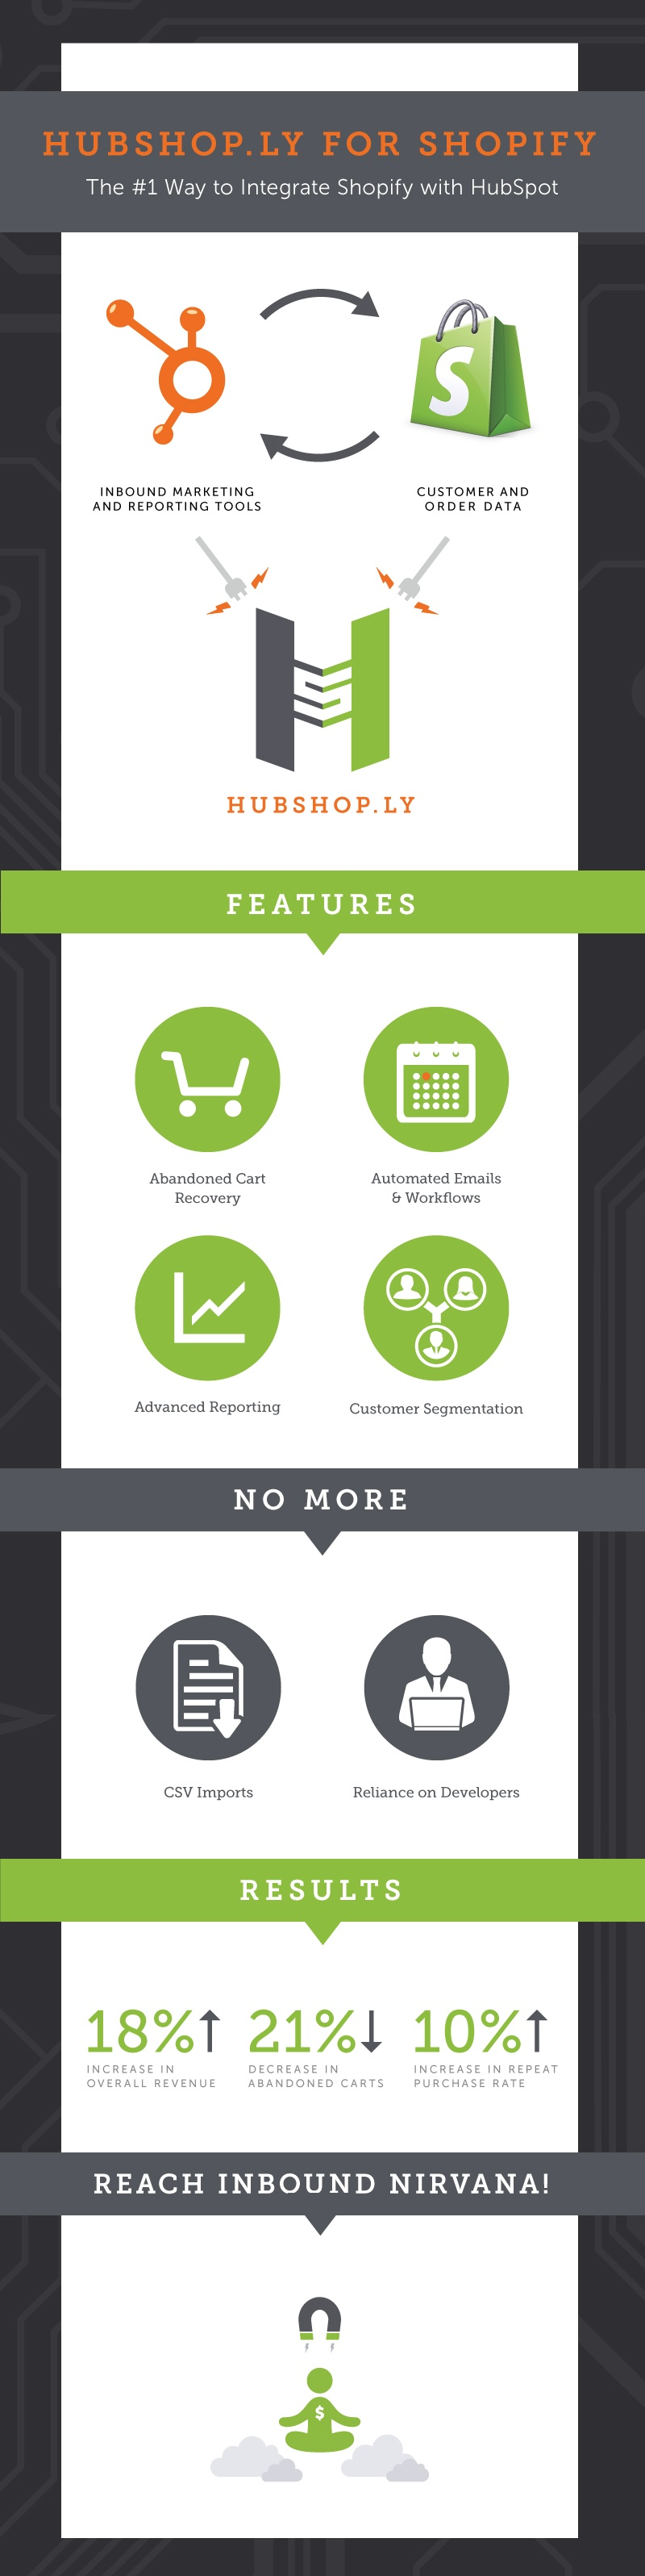 HubShop.ly for Shopify Infographic